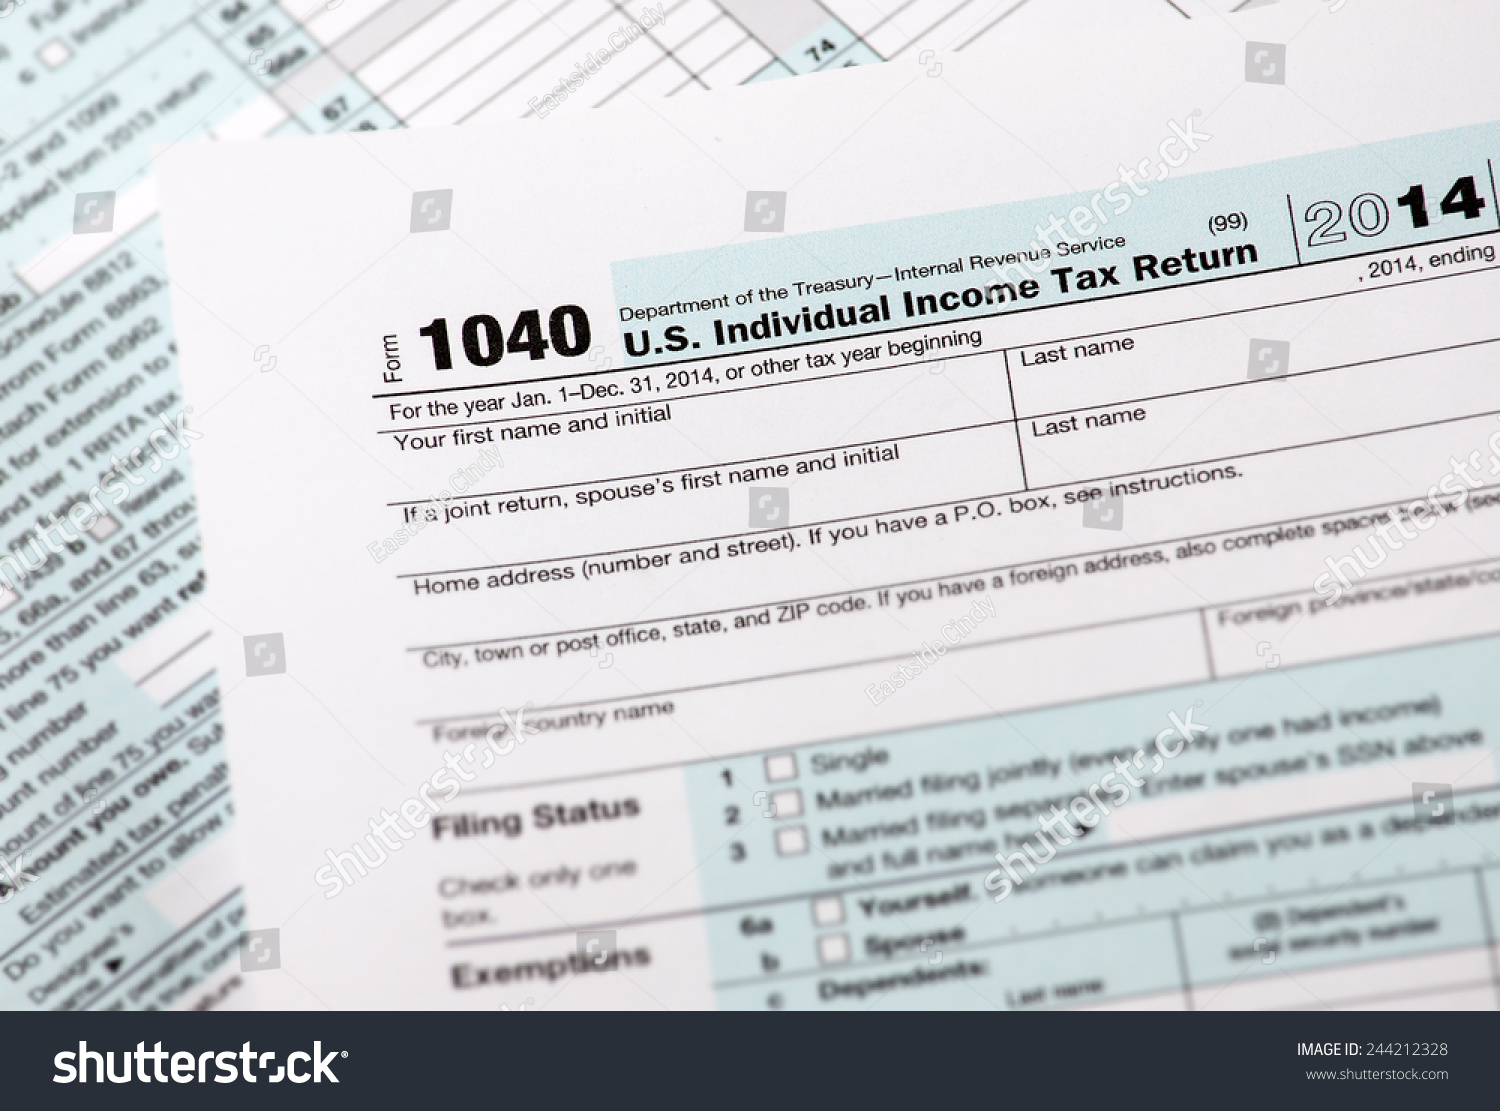 Irs Income Tax Ez Form